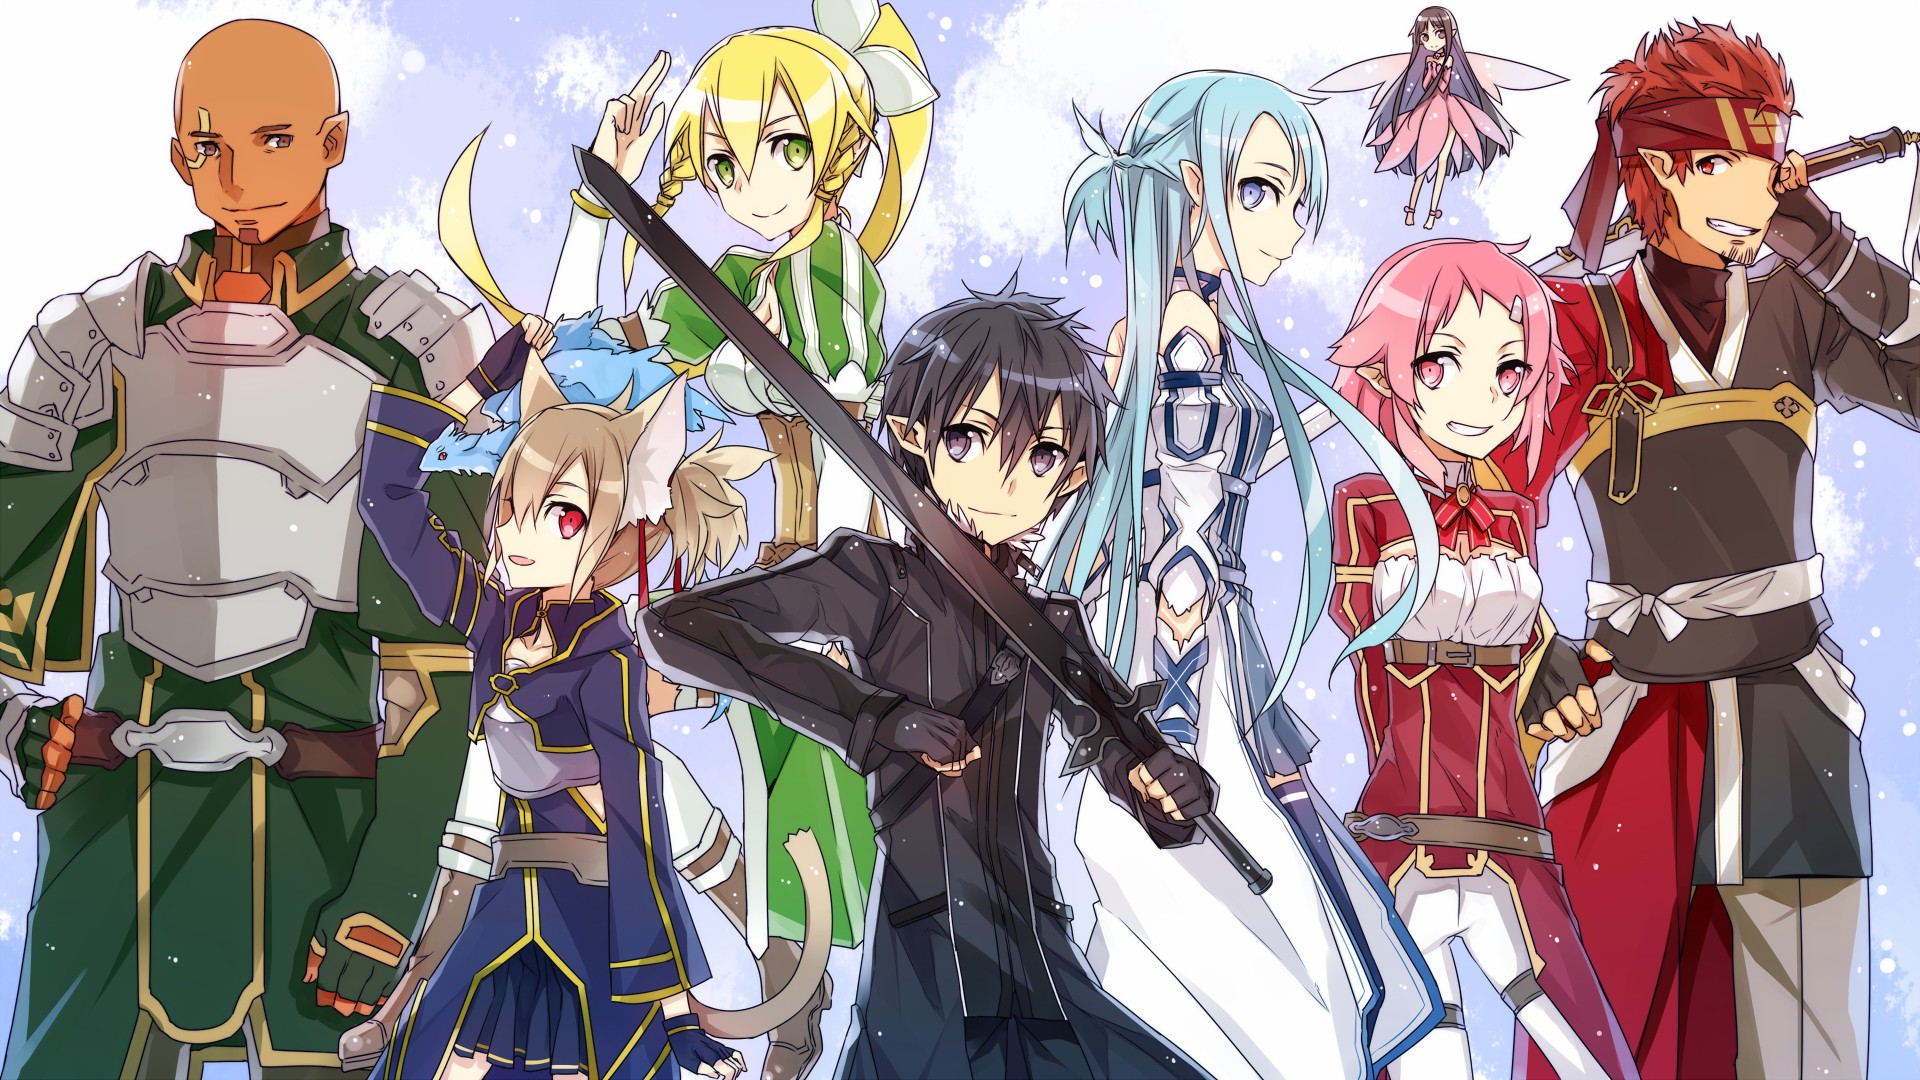 Happy Holidays Anime Girl Wallpaper 1920x1080 Anime Anime Girls Anime Boys Sword Art Online Kirigaya